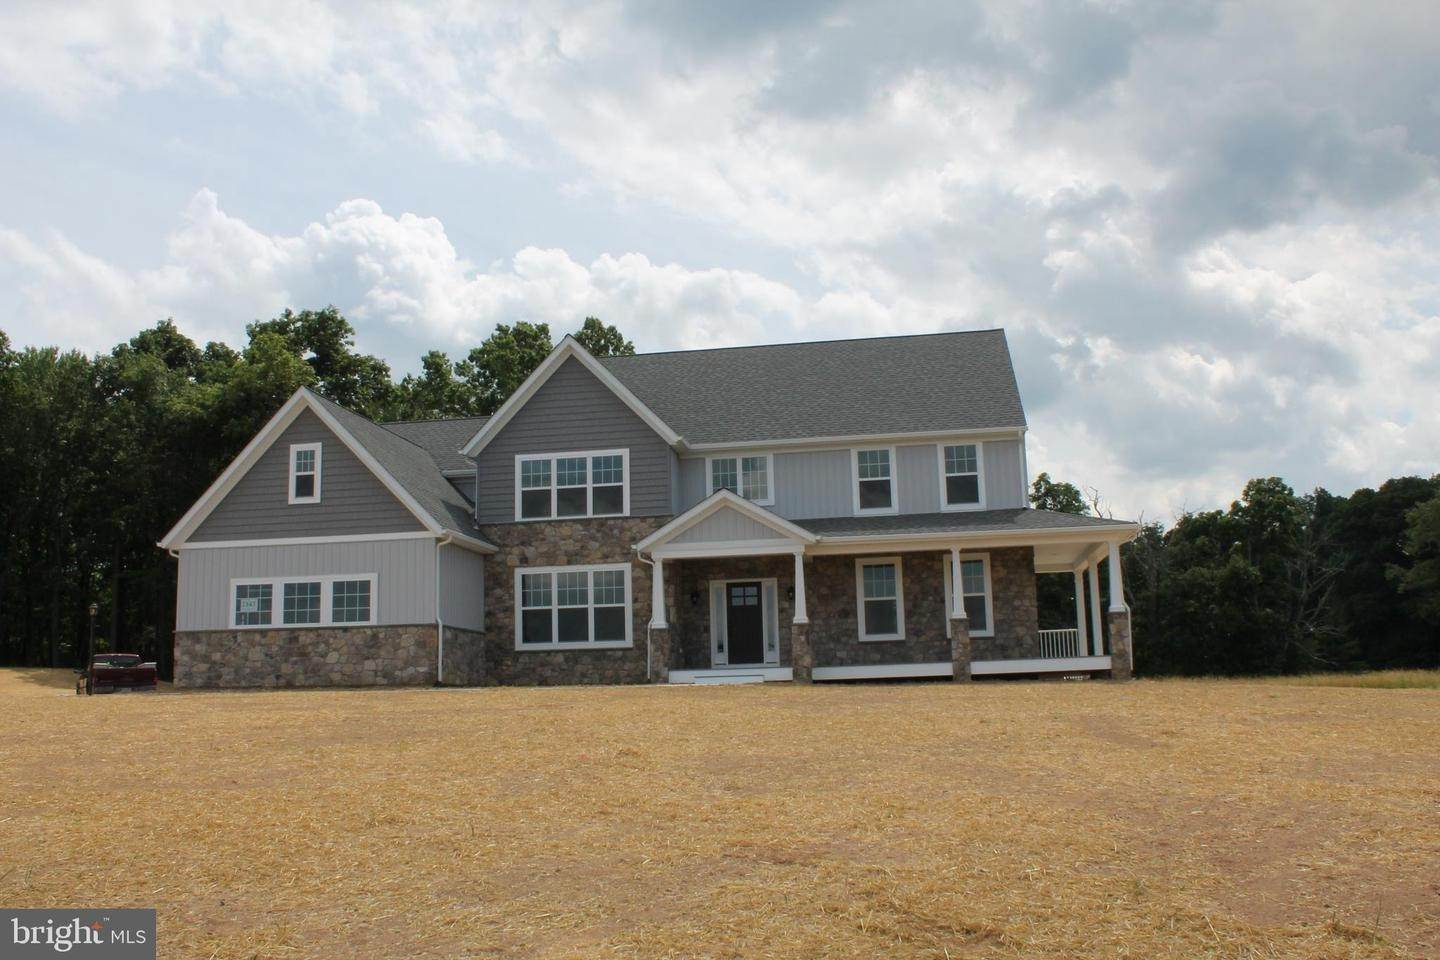 Detached House for Sale at 3563 TIMBER Lane Slatington, Pennsylvania 18080 United States